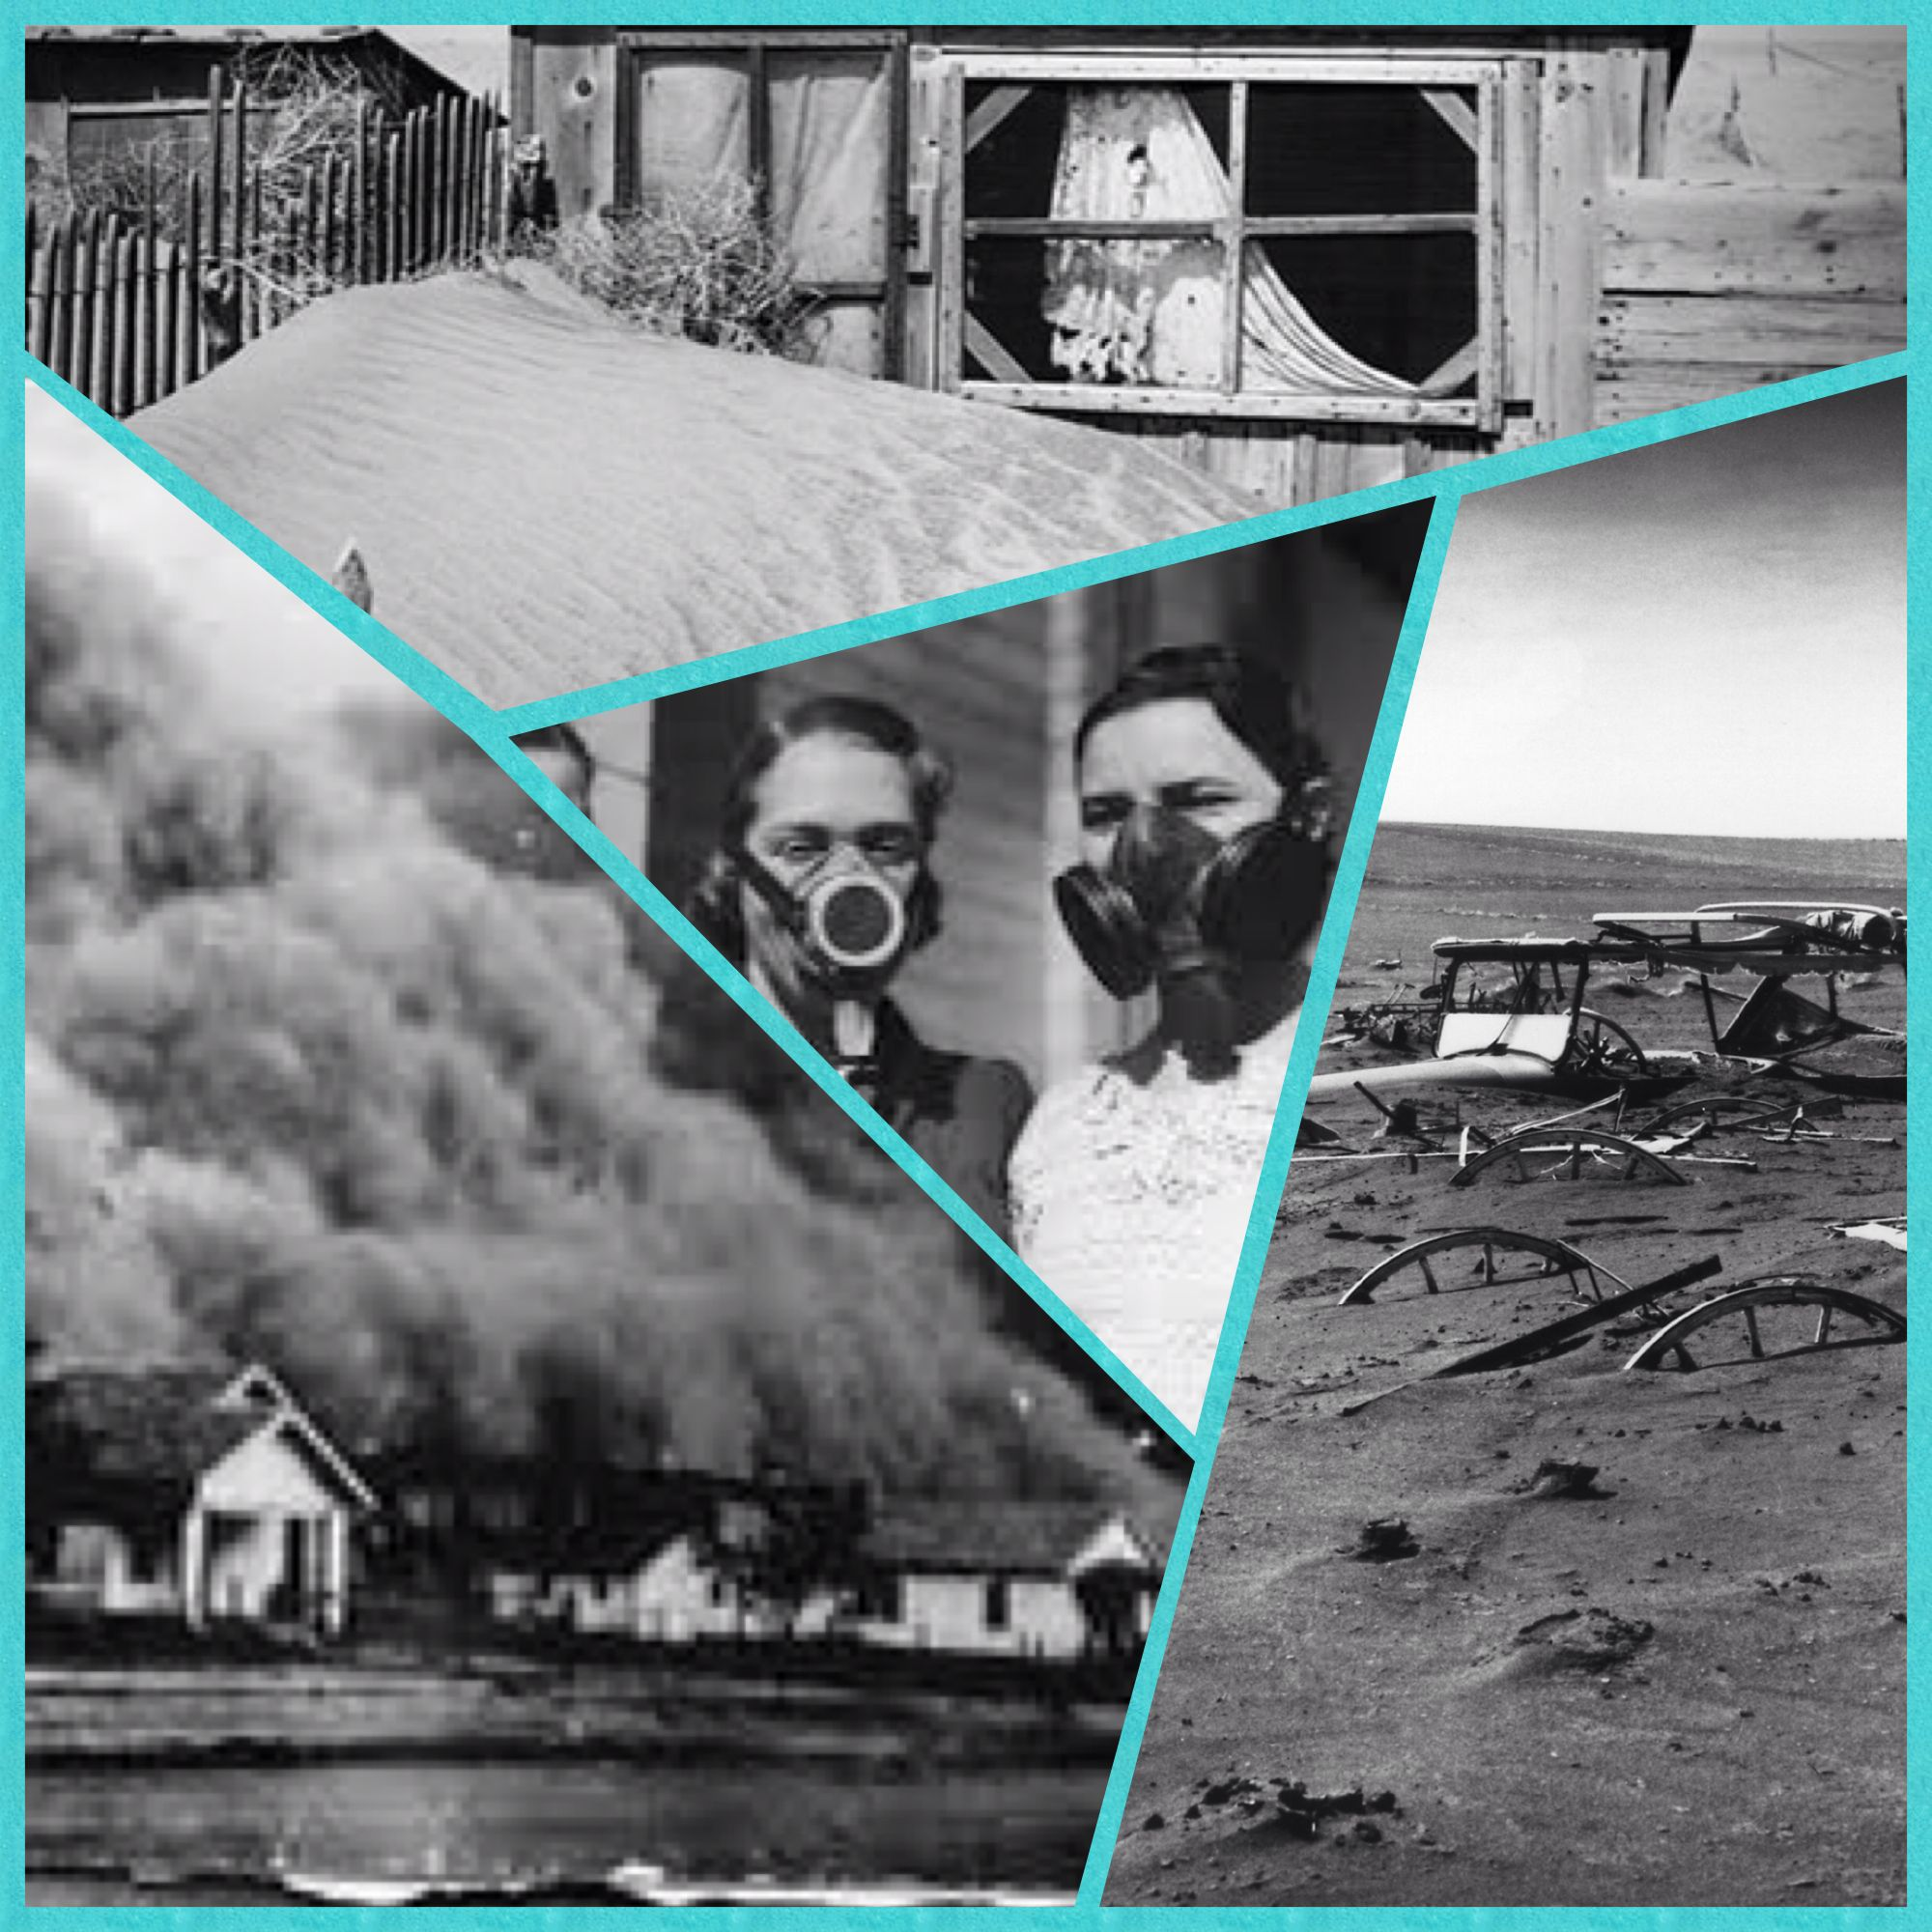 The Dust Bowl was the name given to an area of the Great